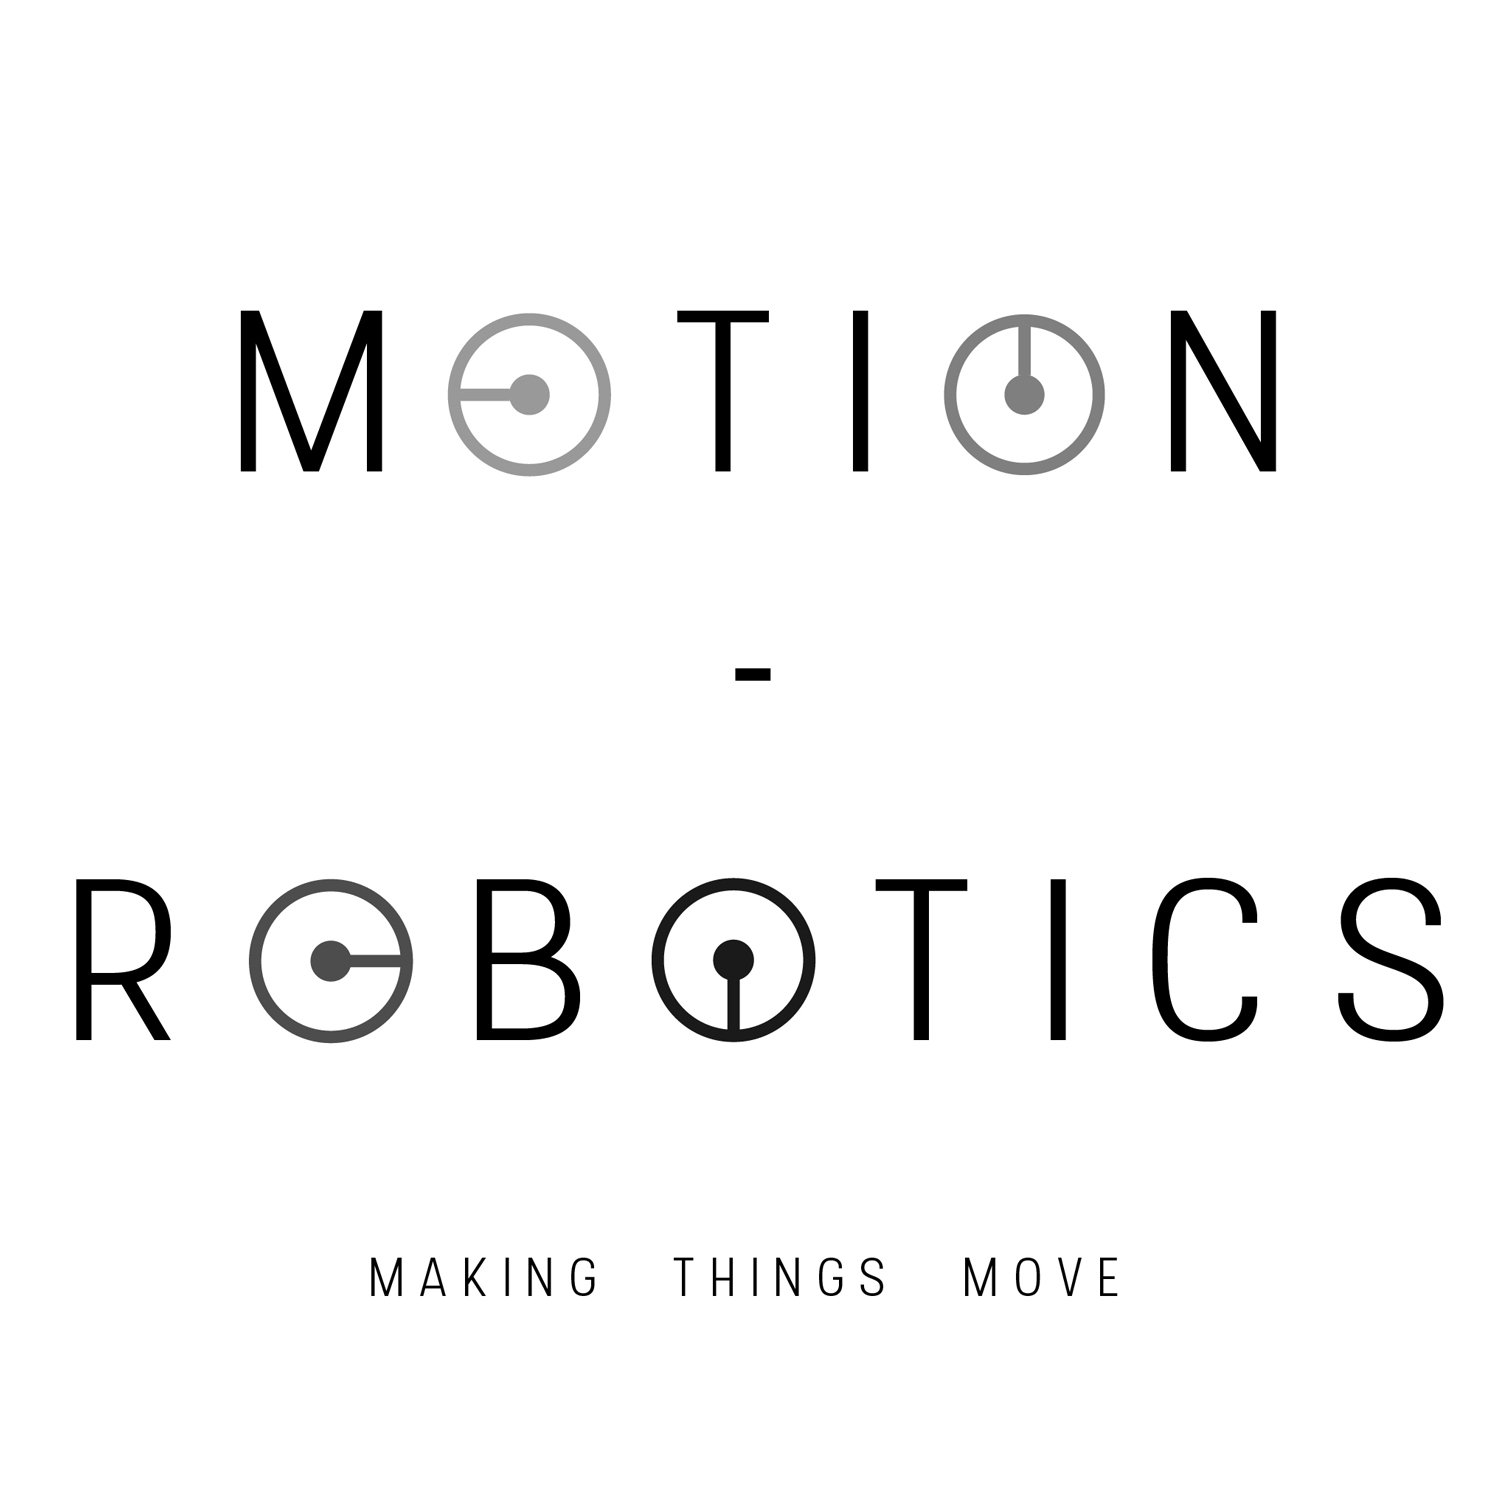 Motion-Robotics Ltd.